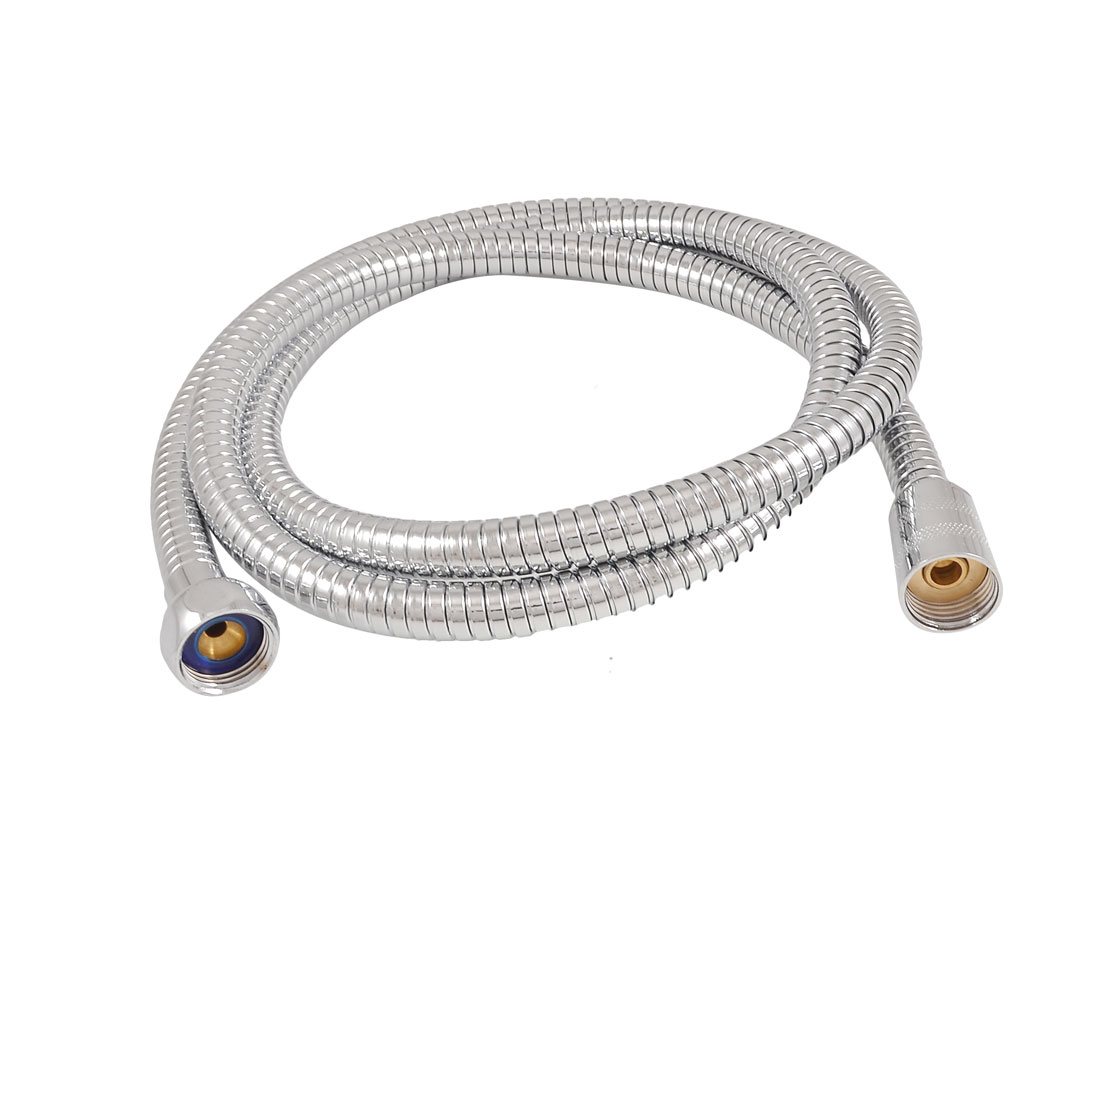 4.8Ft Length Bathroom Silver Tone Stainless Steel Flexible Shower Hose Pipe